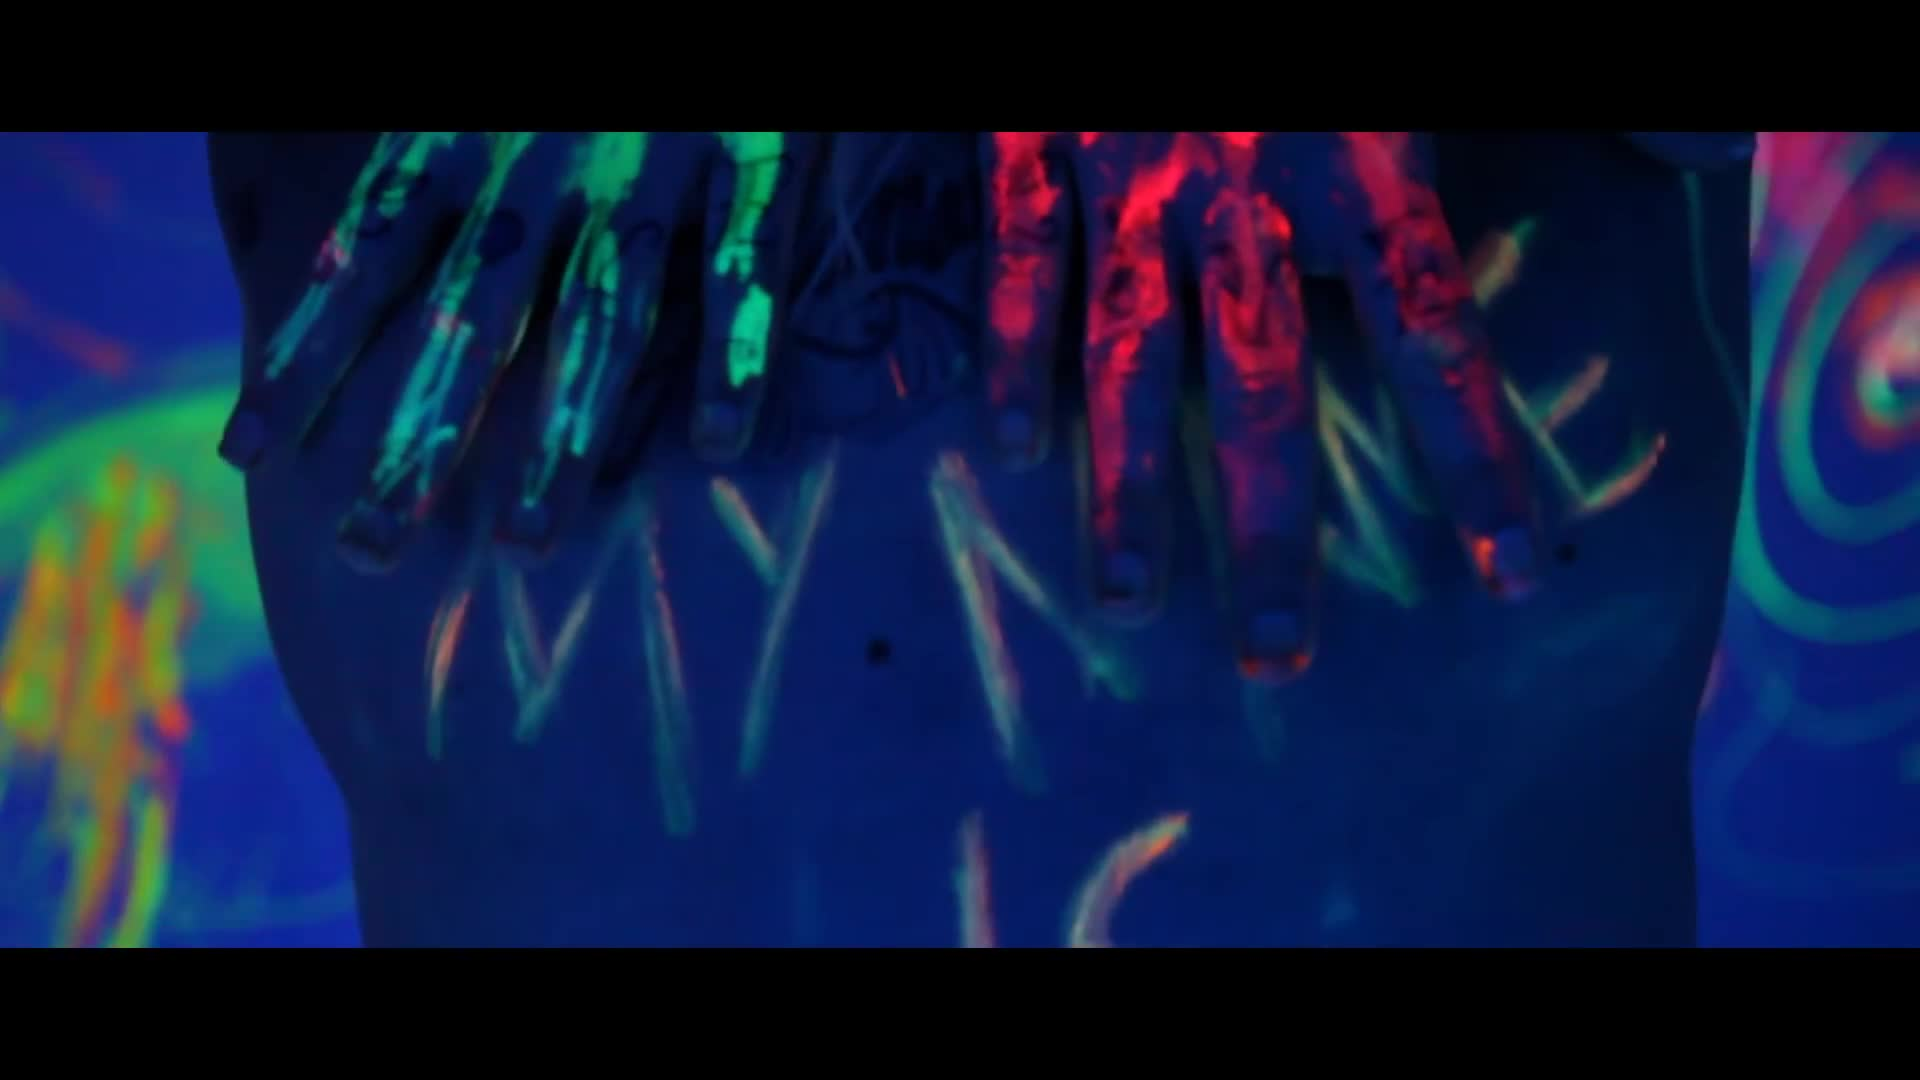 HANDSOME TRUTH/Jon Minadeo/Shoobie Da Wop: The failed rapper